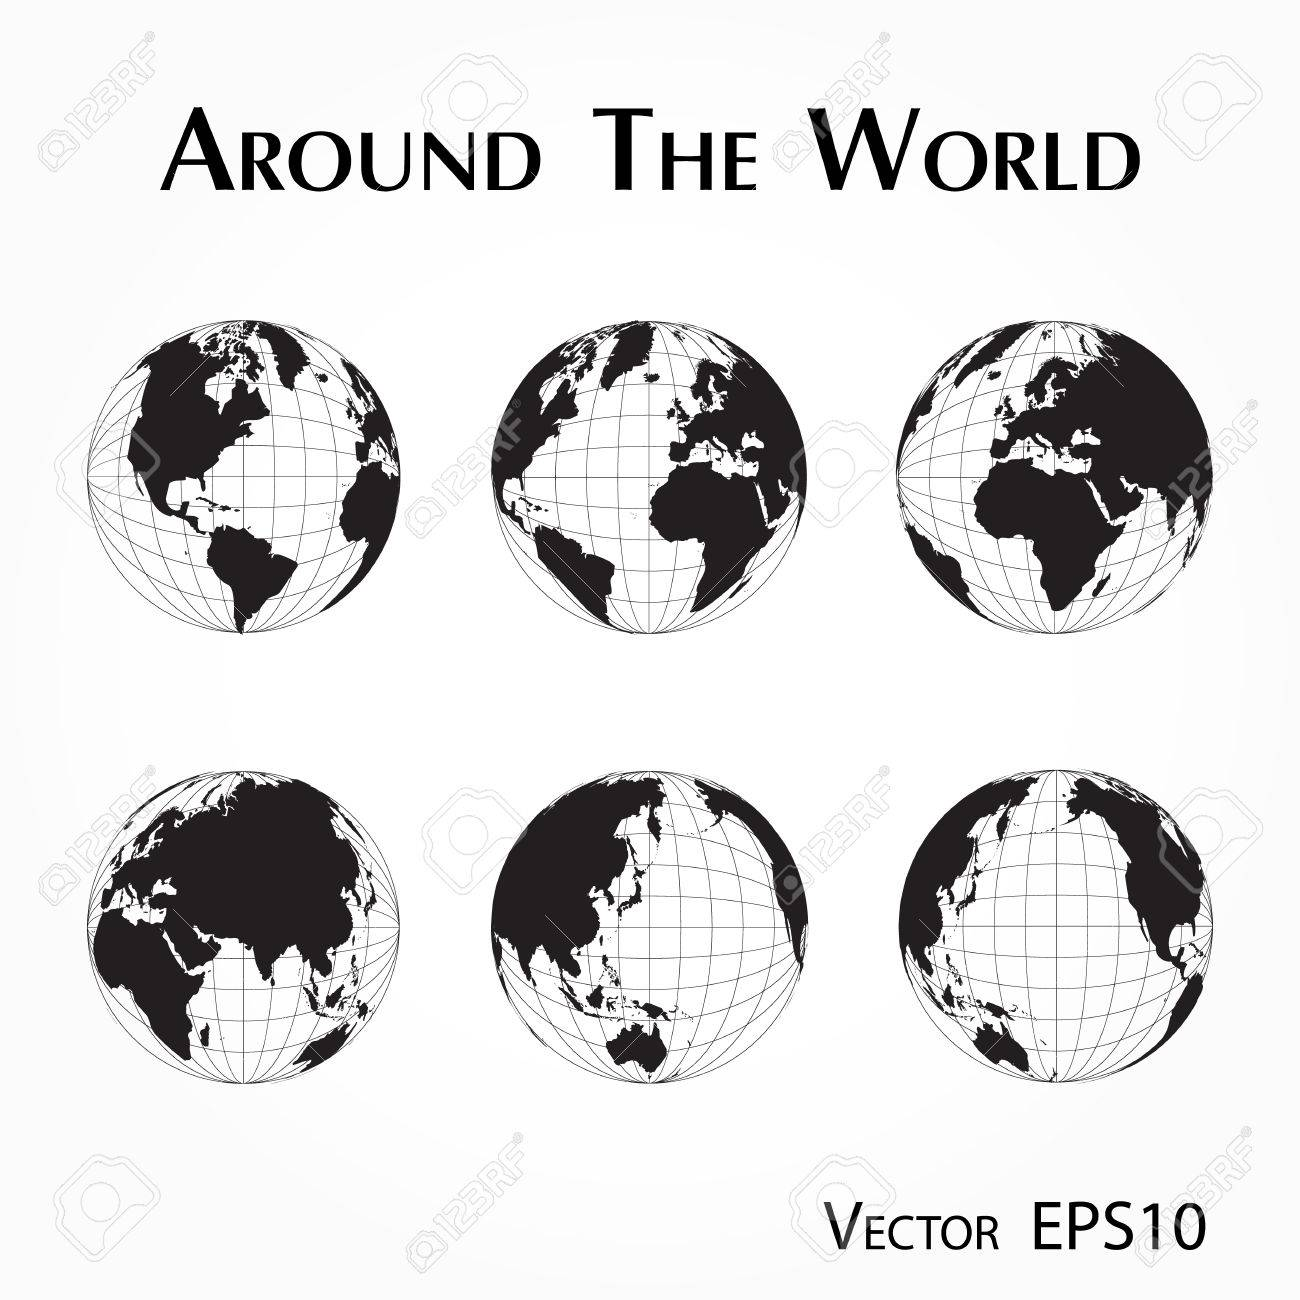 Around the world outline of world map with latitude and longitude around the world outline of world map with latitude and longitude stock vector gumiabroncs Image collections